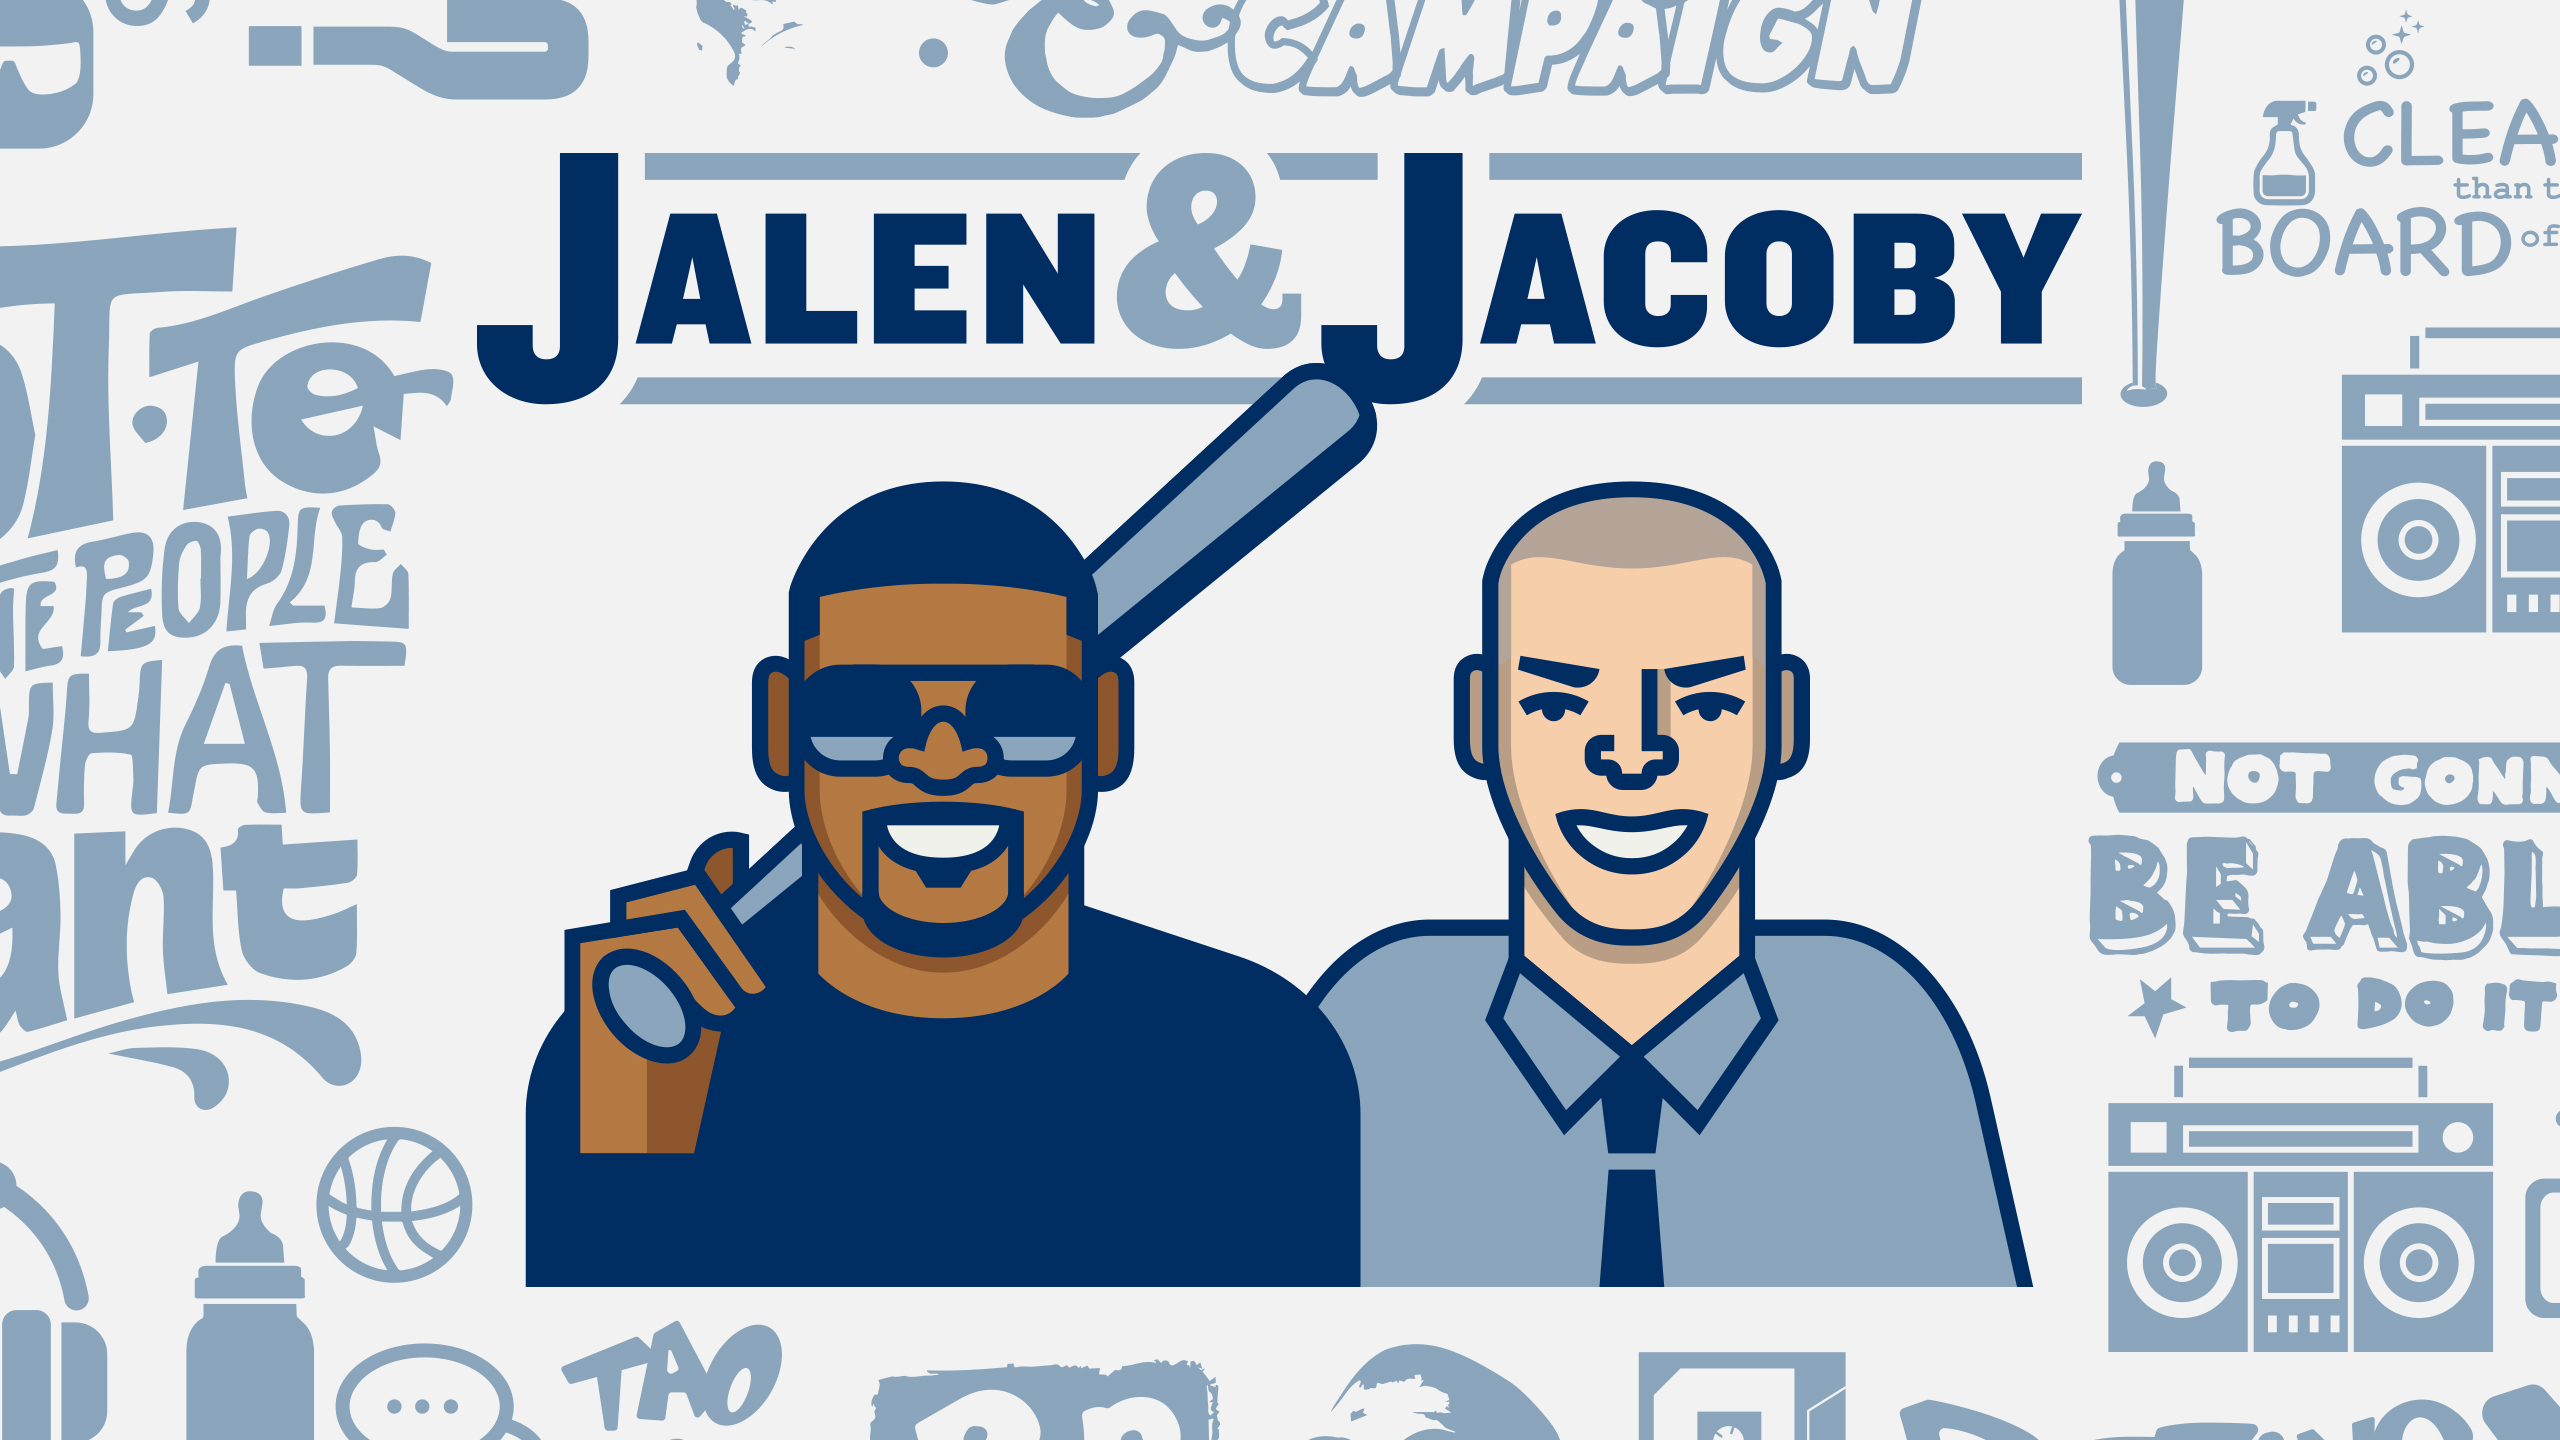 Thu, 2/21 - Jalen & Jacoby